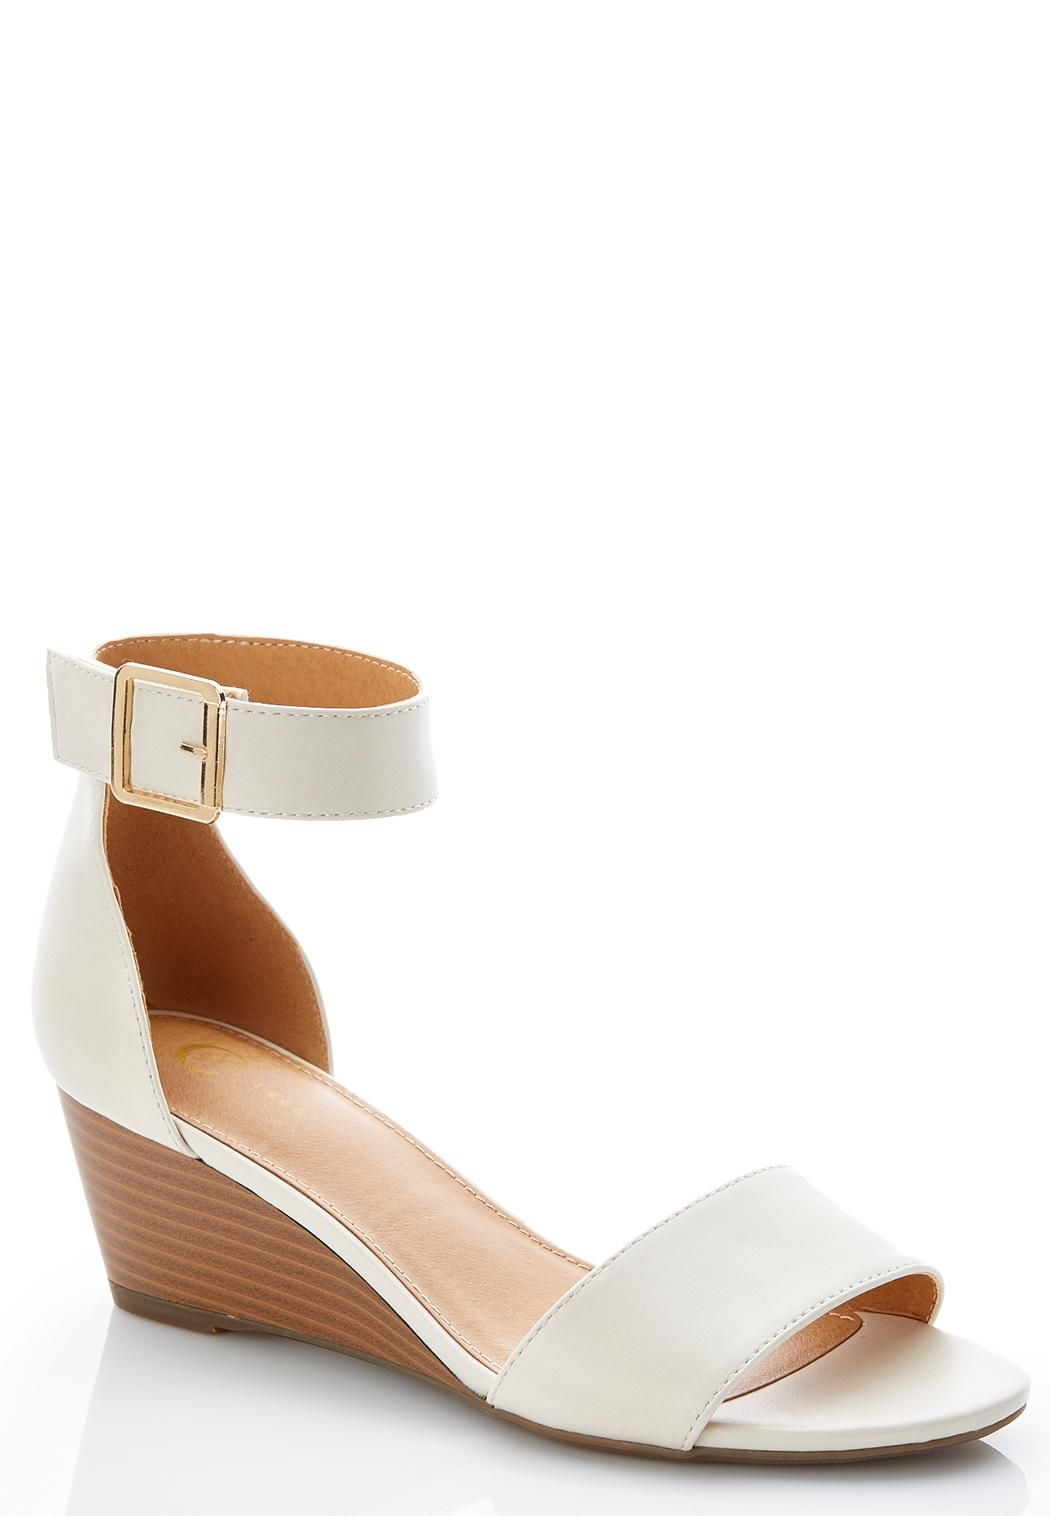 c2ce01509f1 Wide Width Ankle Strap Wedge Heels  catoconfident